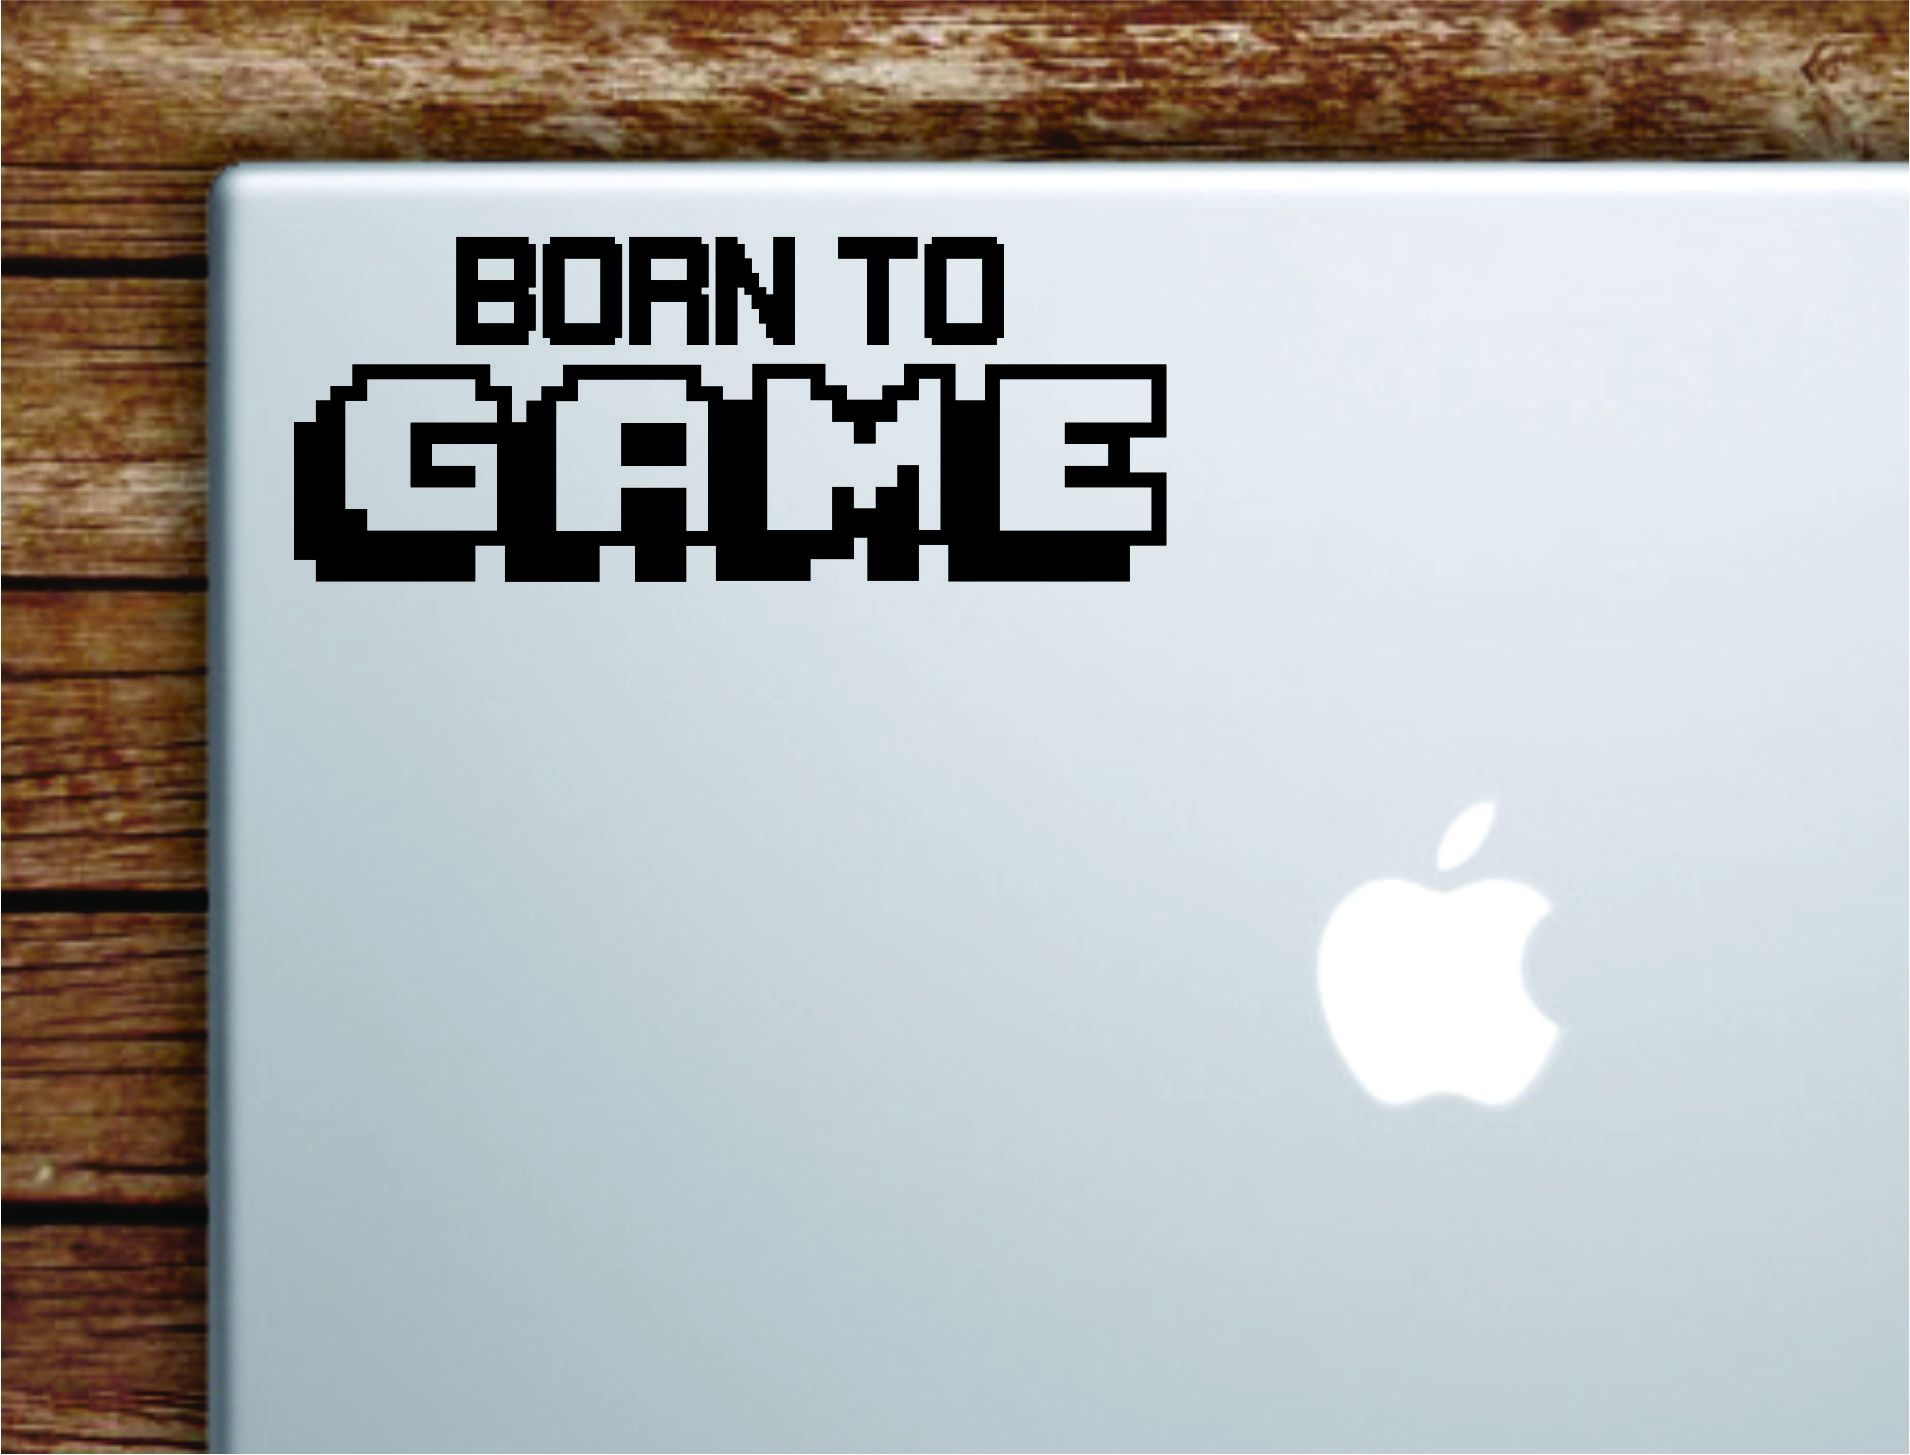 Born to Game Laptop Wall Decal Sticker Vinyl Art Quote Macbook Apple Decor Car Window Truck Kids Baby Teen Video Gamer Gaming Xbox PS4 - gold